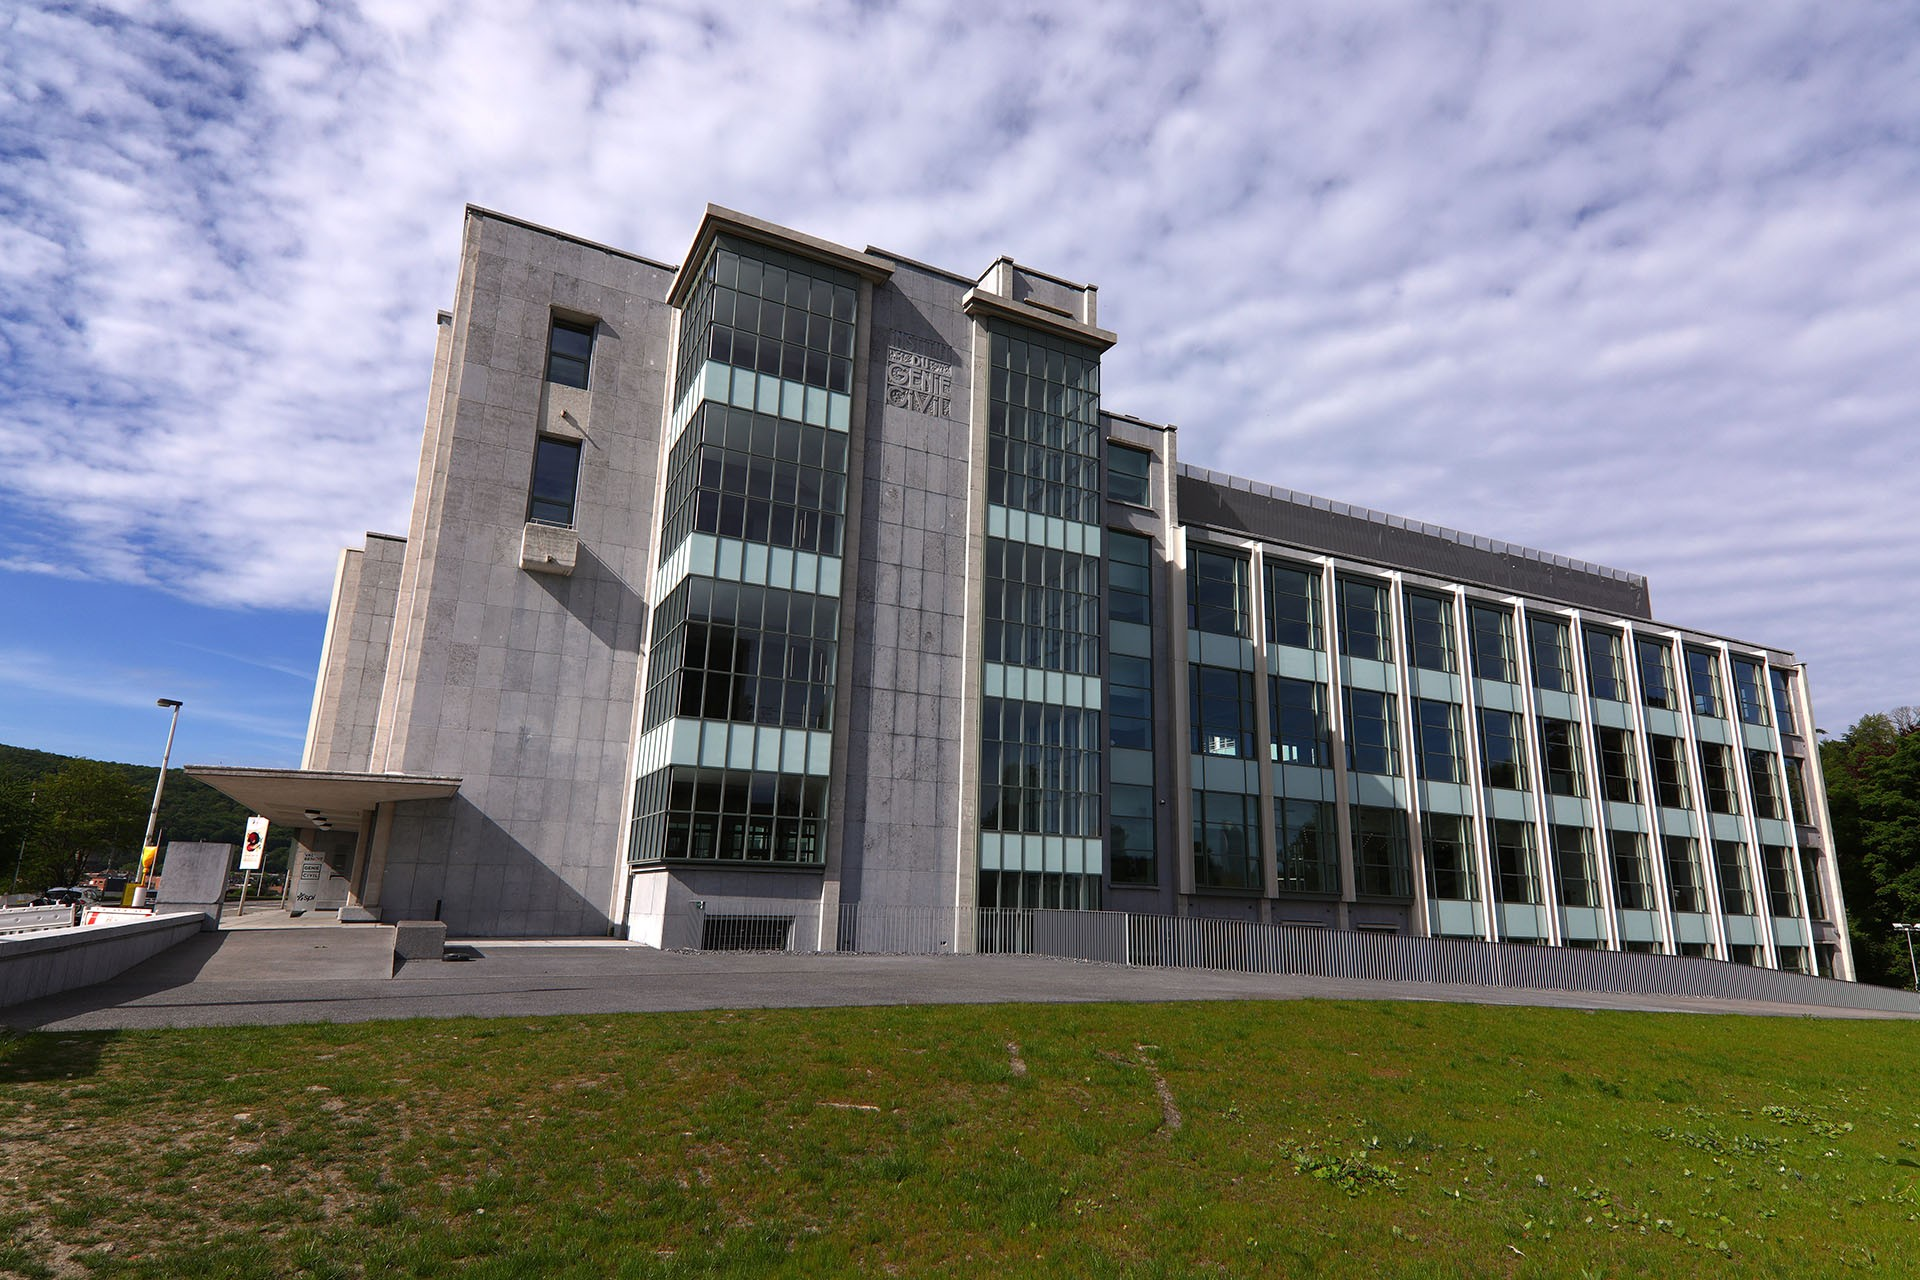 Val Benoît - Civil engineering building